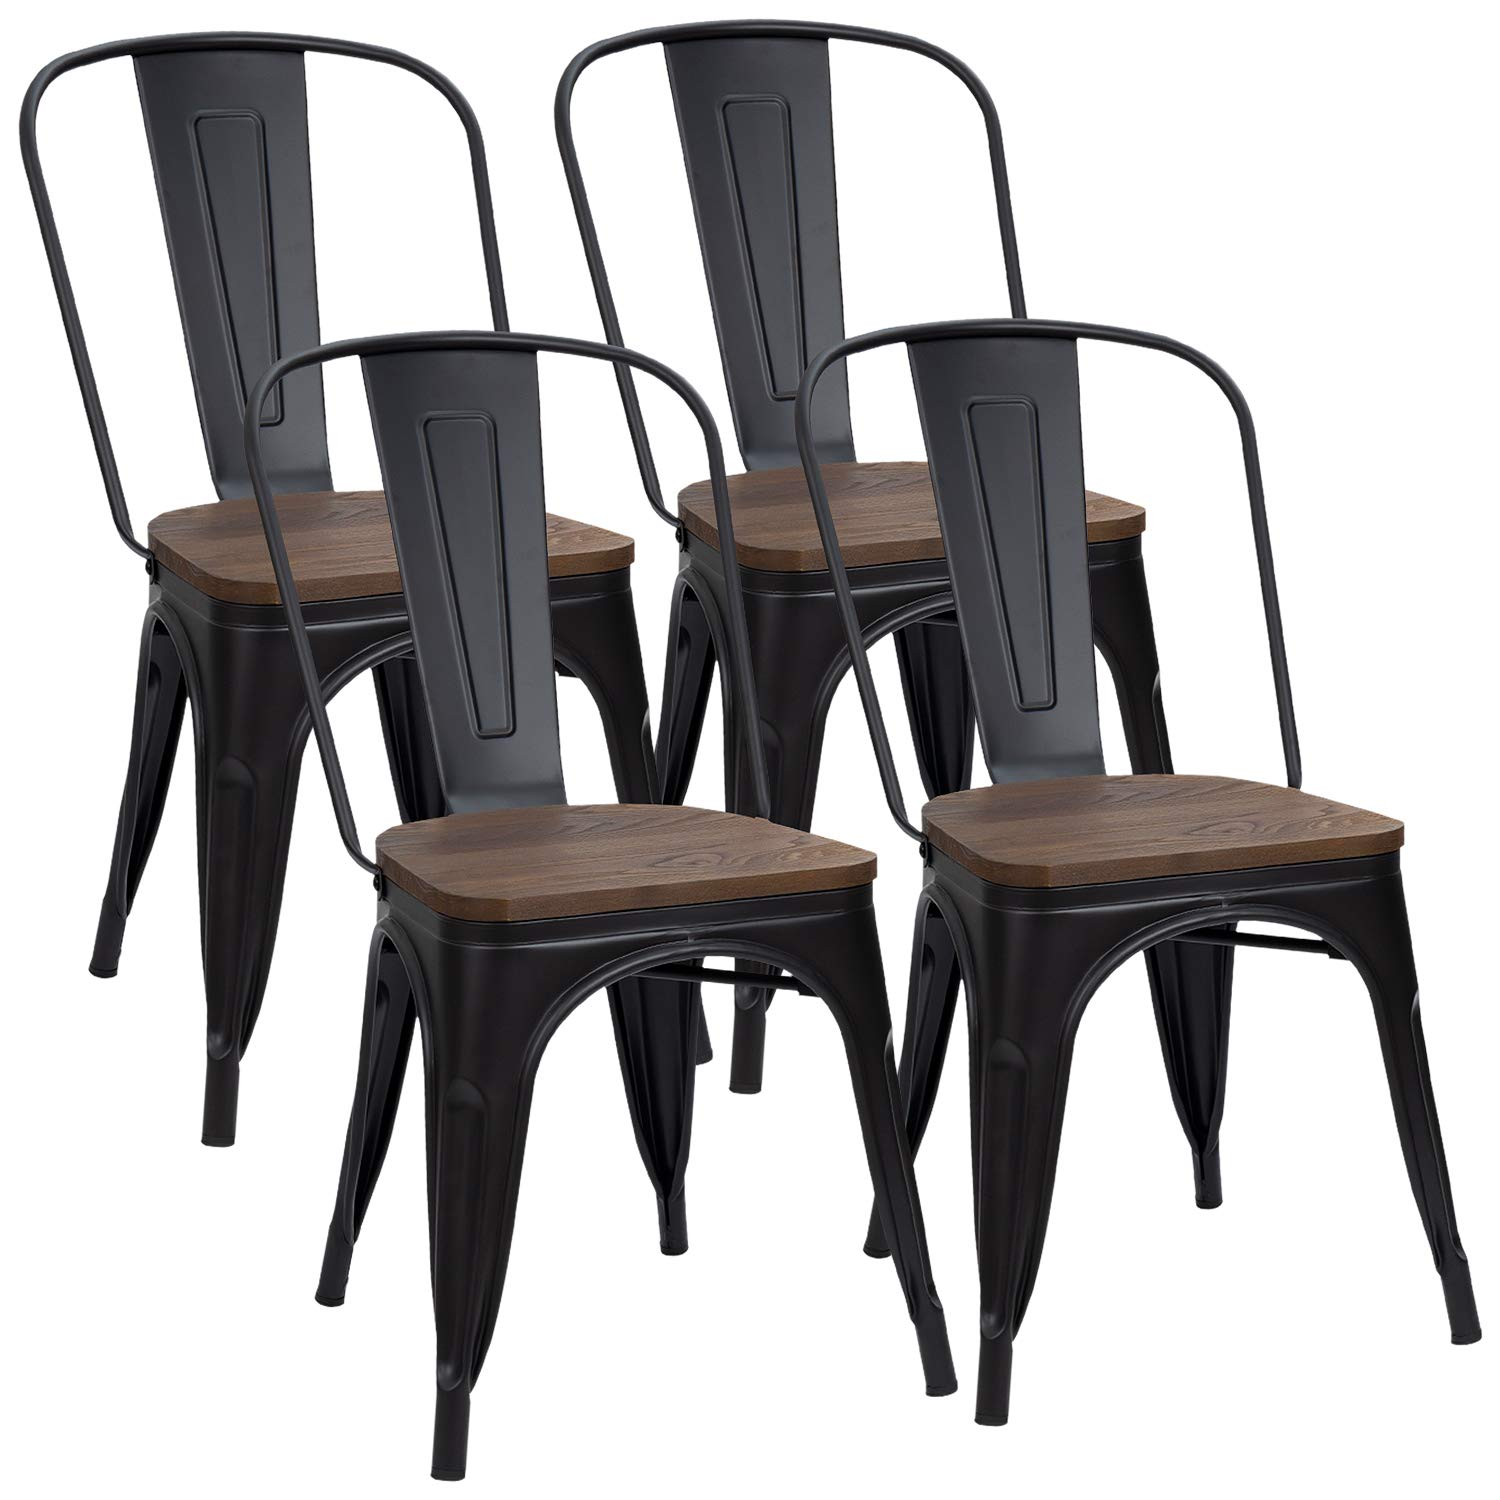 Furmax Metal Dining Chair Indoor-Outdoor Use Stackable Chic Dining Bistro Cafe Side Metal Chairs Set of 4(Black)